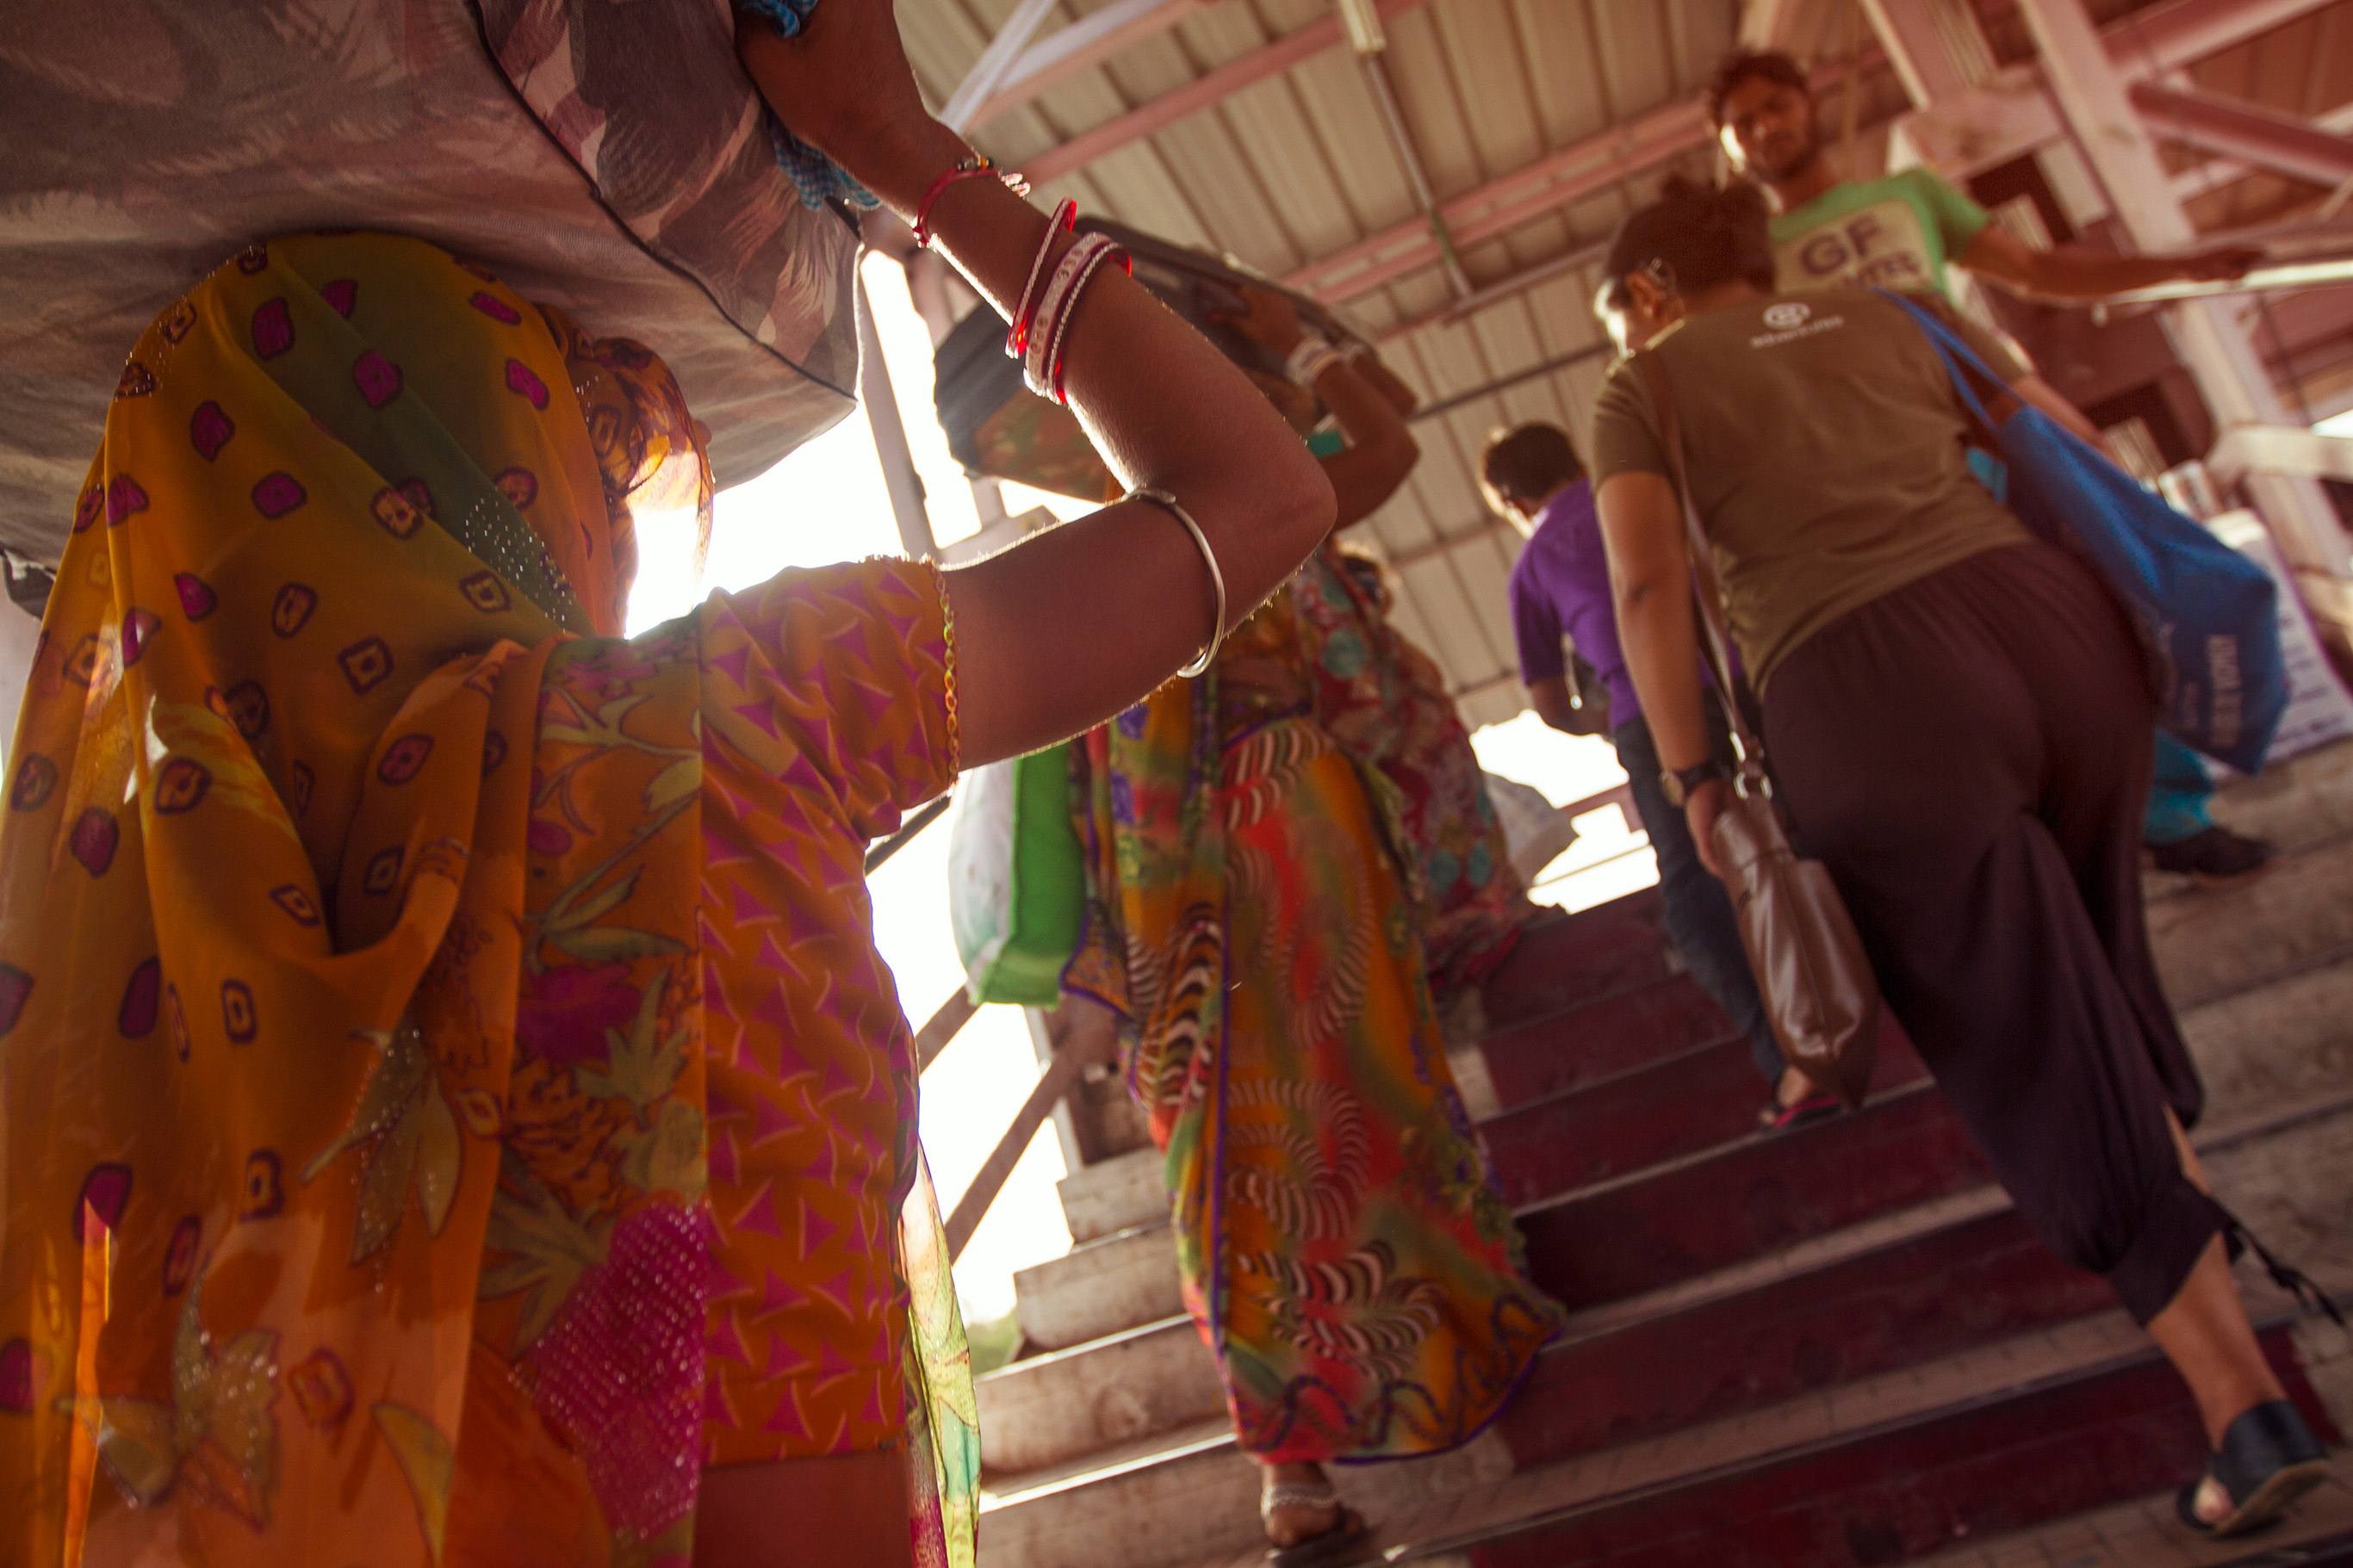 Colours abound at the train station in New Delhi.